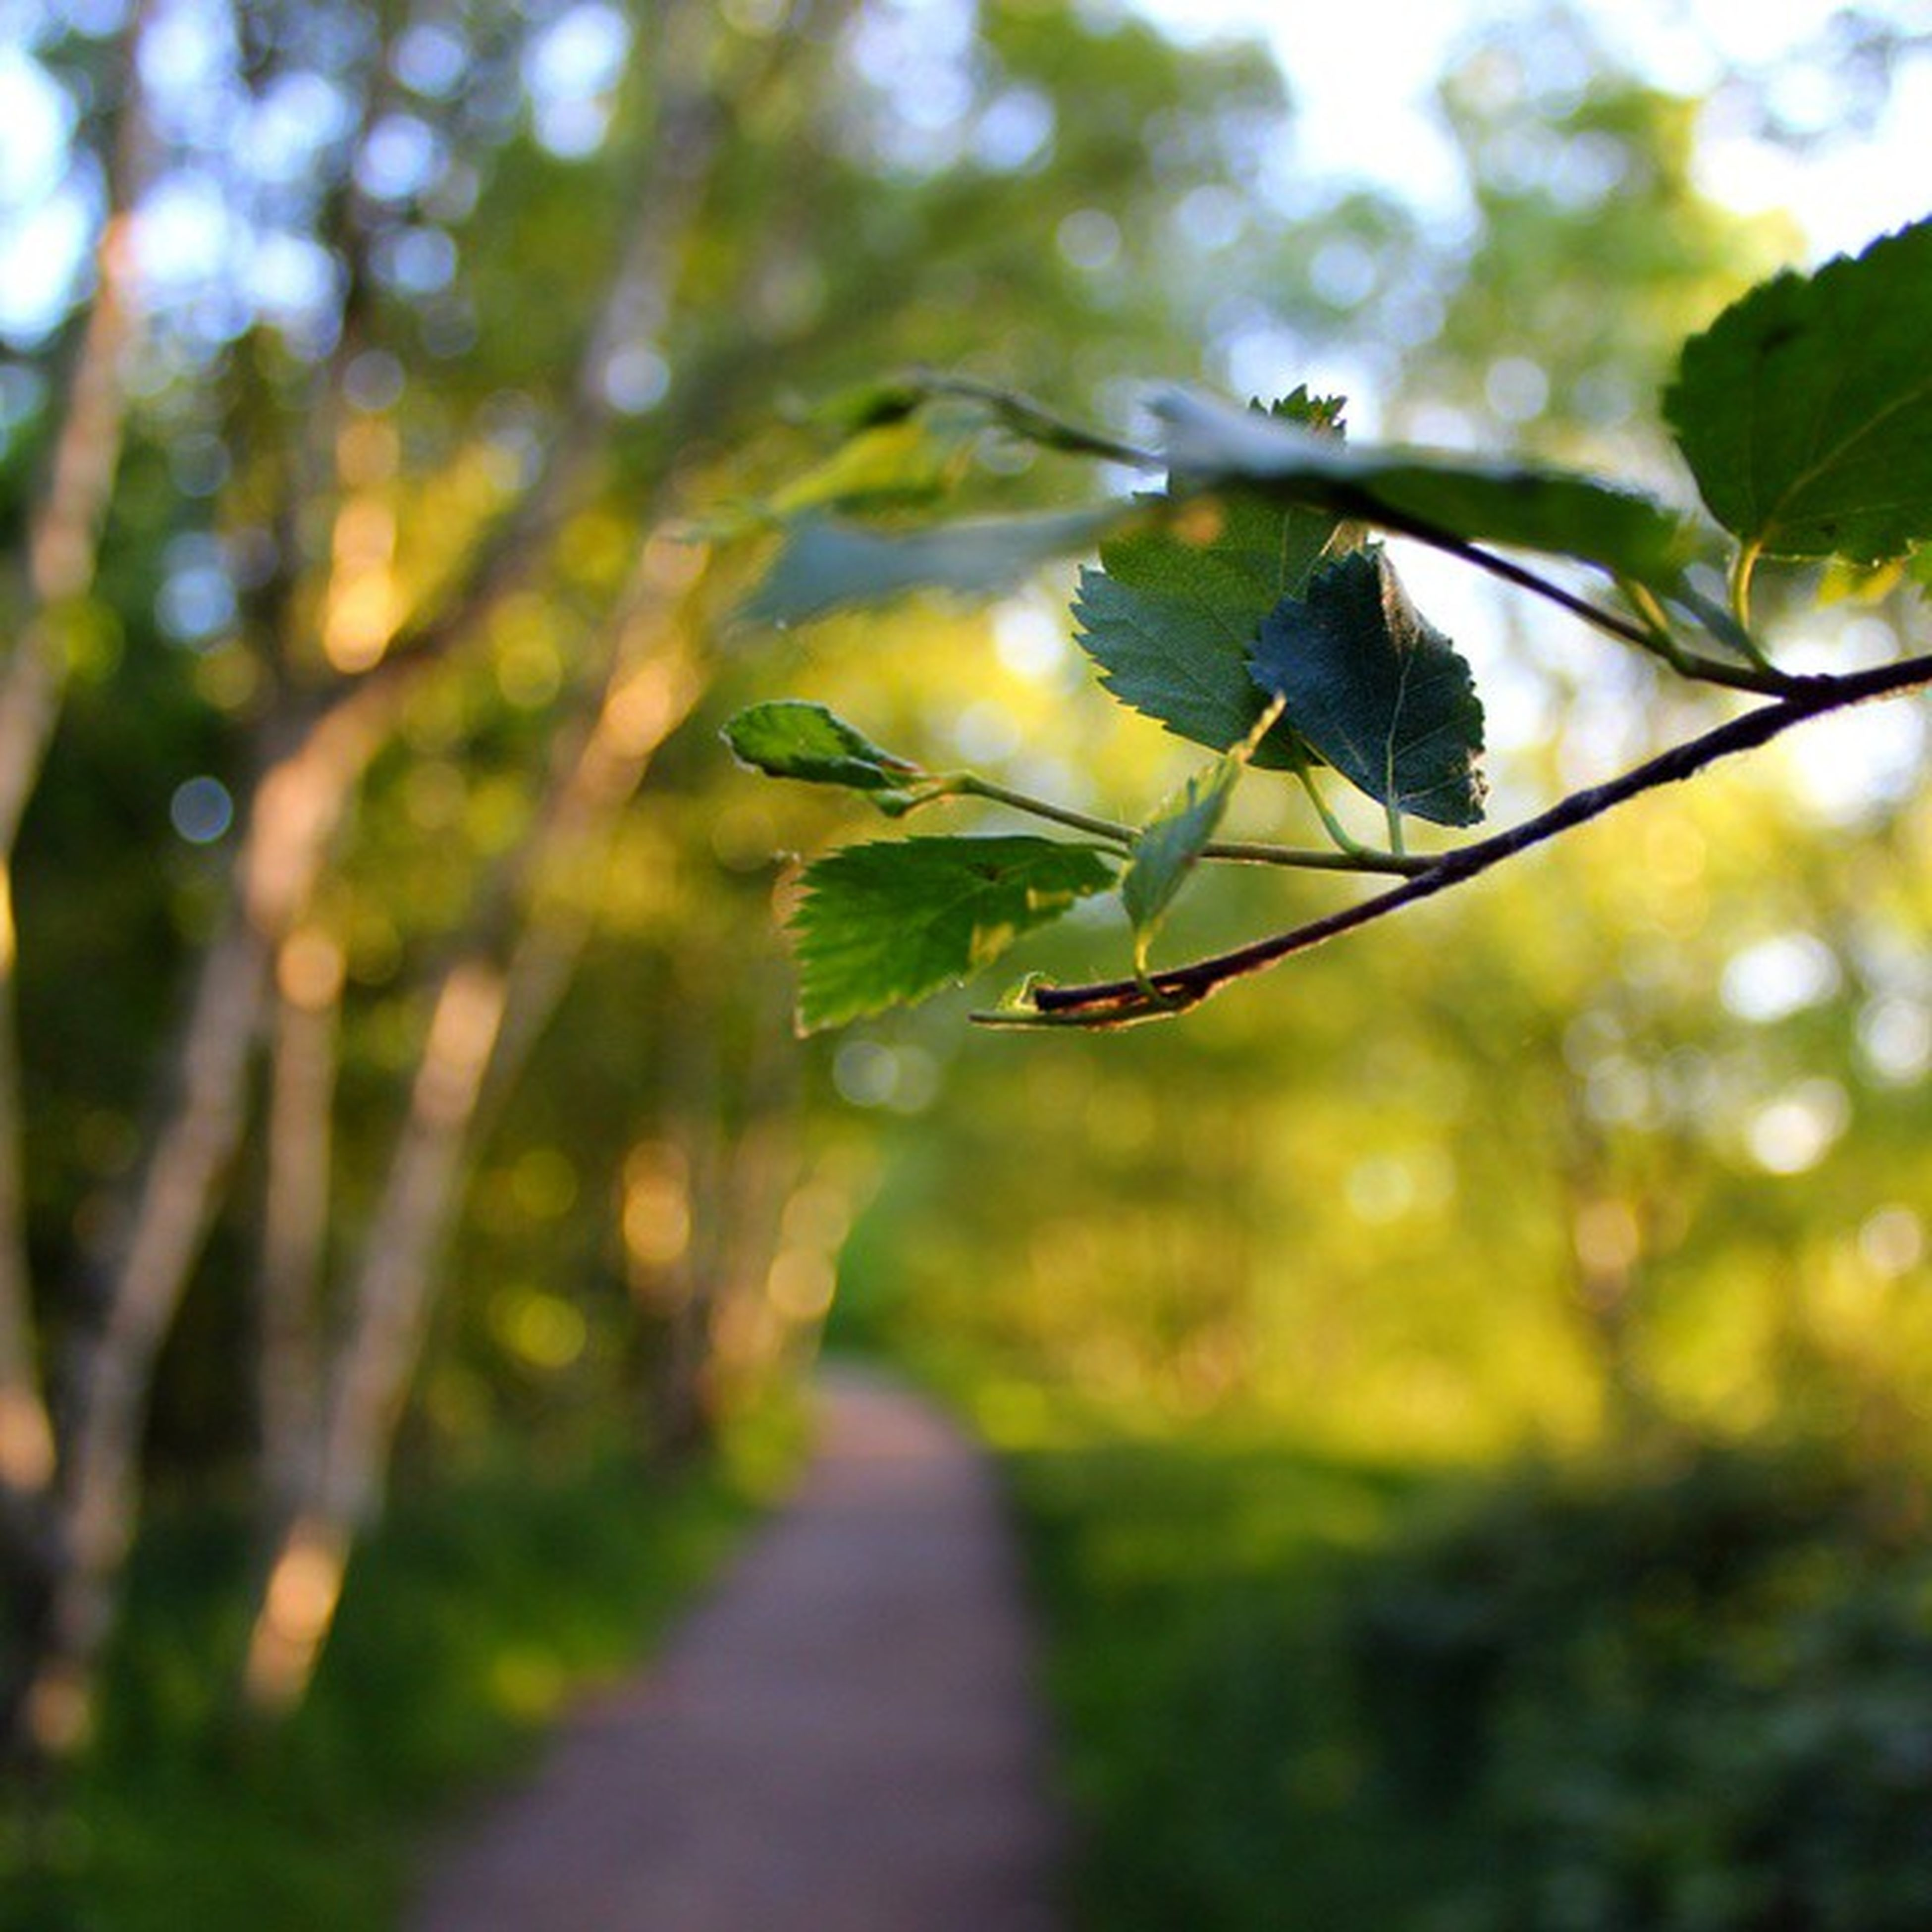 leaf, tree, the way forward, growth, focus on foreground, green color, selective focus, nature, branch, plant, sunlight, diminishing perspective, tranquility, day, no people, outdoors, close-up, beauty in nature, forest, one animal